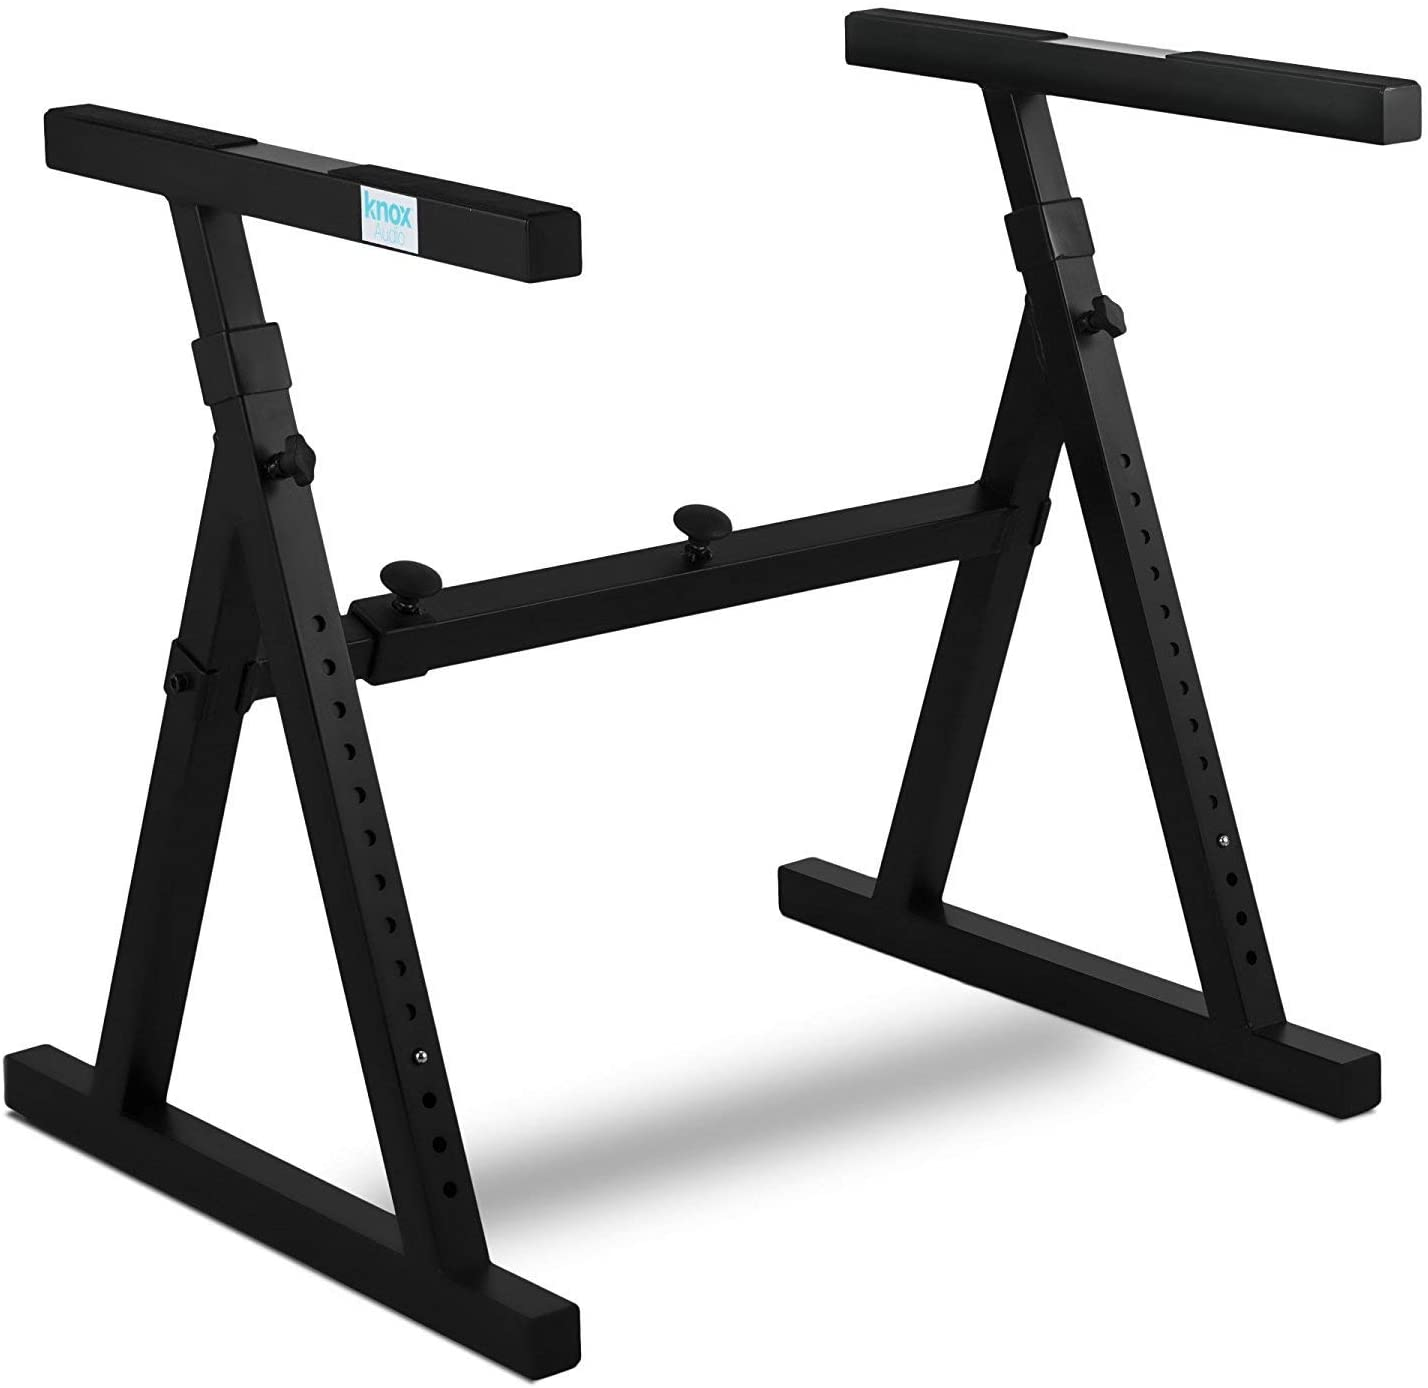 Knox Gear Z-Style Adjustable Keyboard Stand